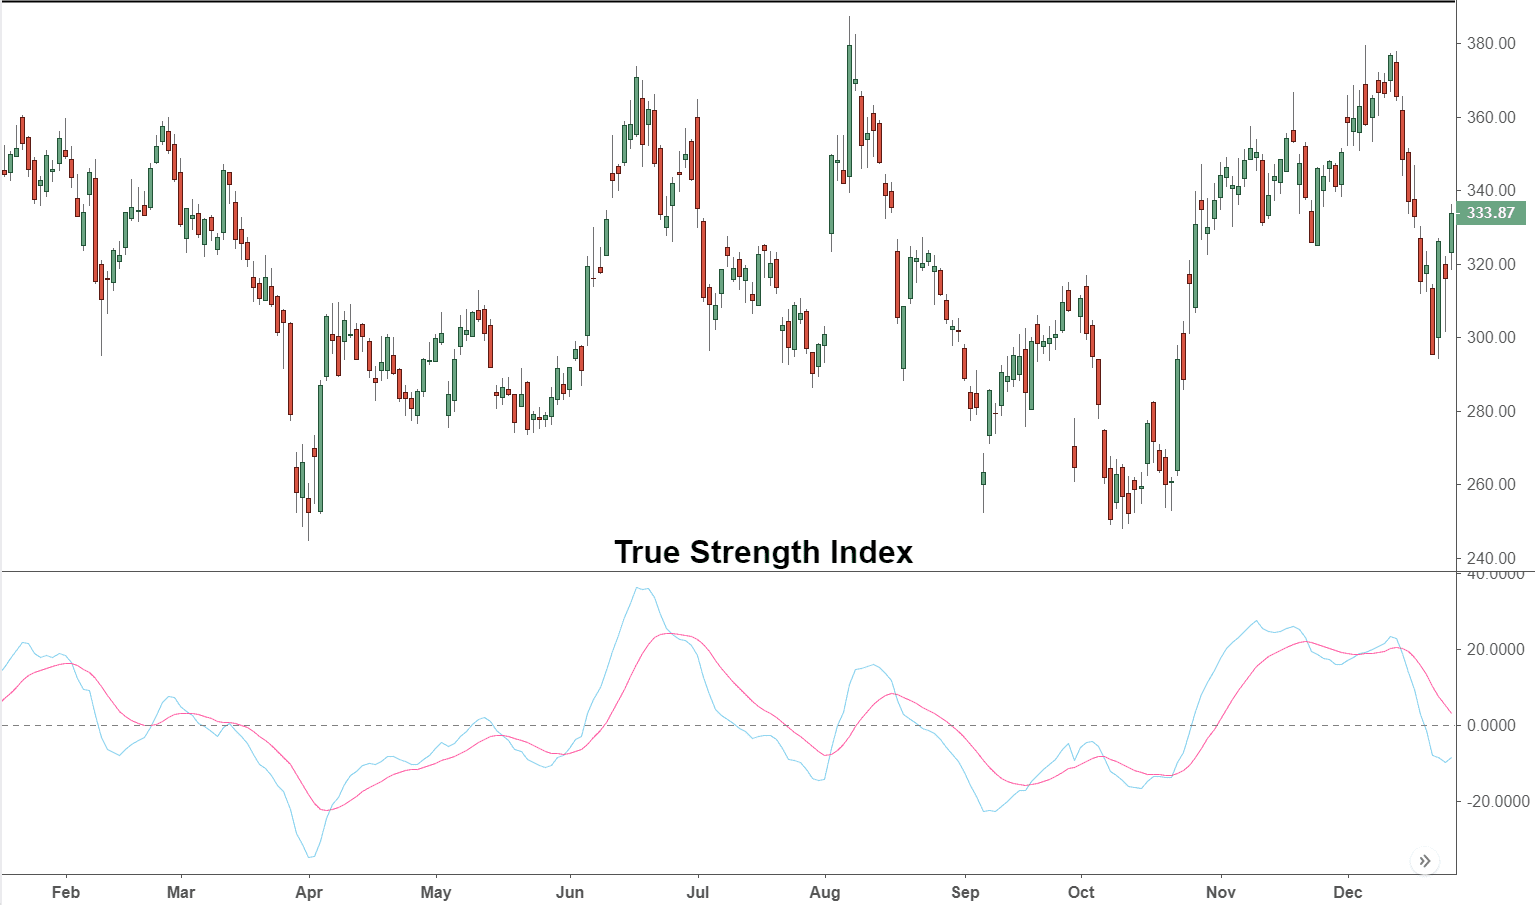 True Strength Index (TSI) Definition and Uses